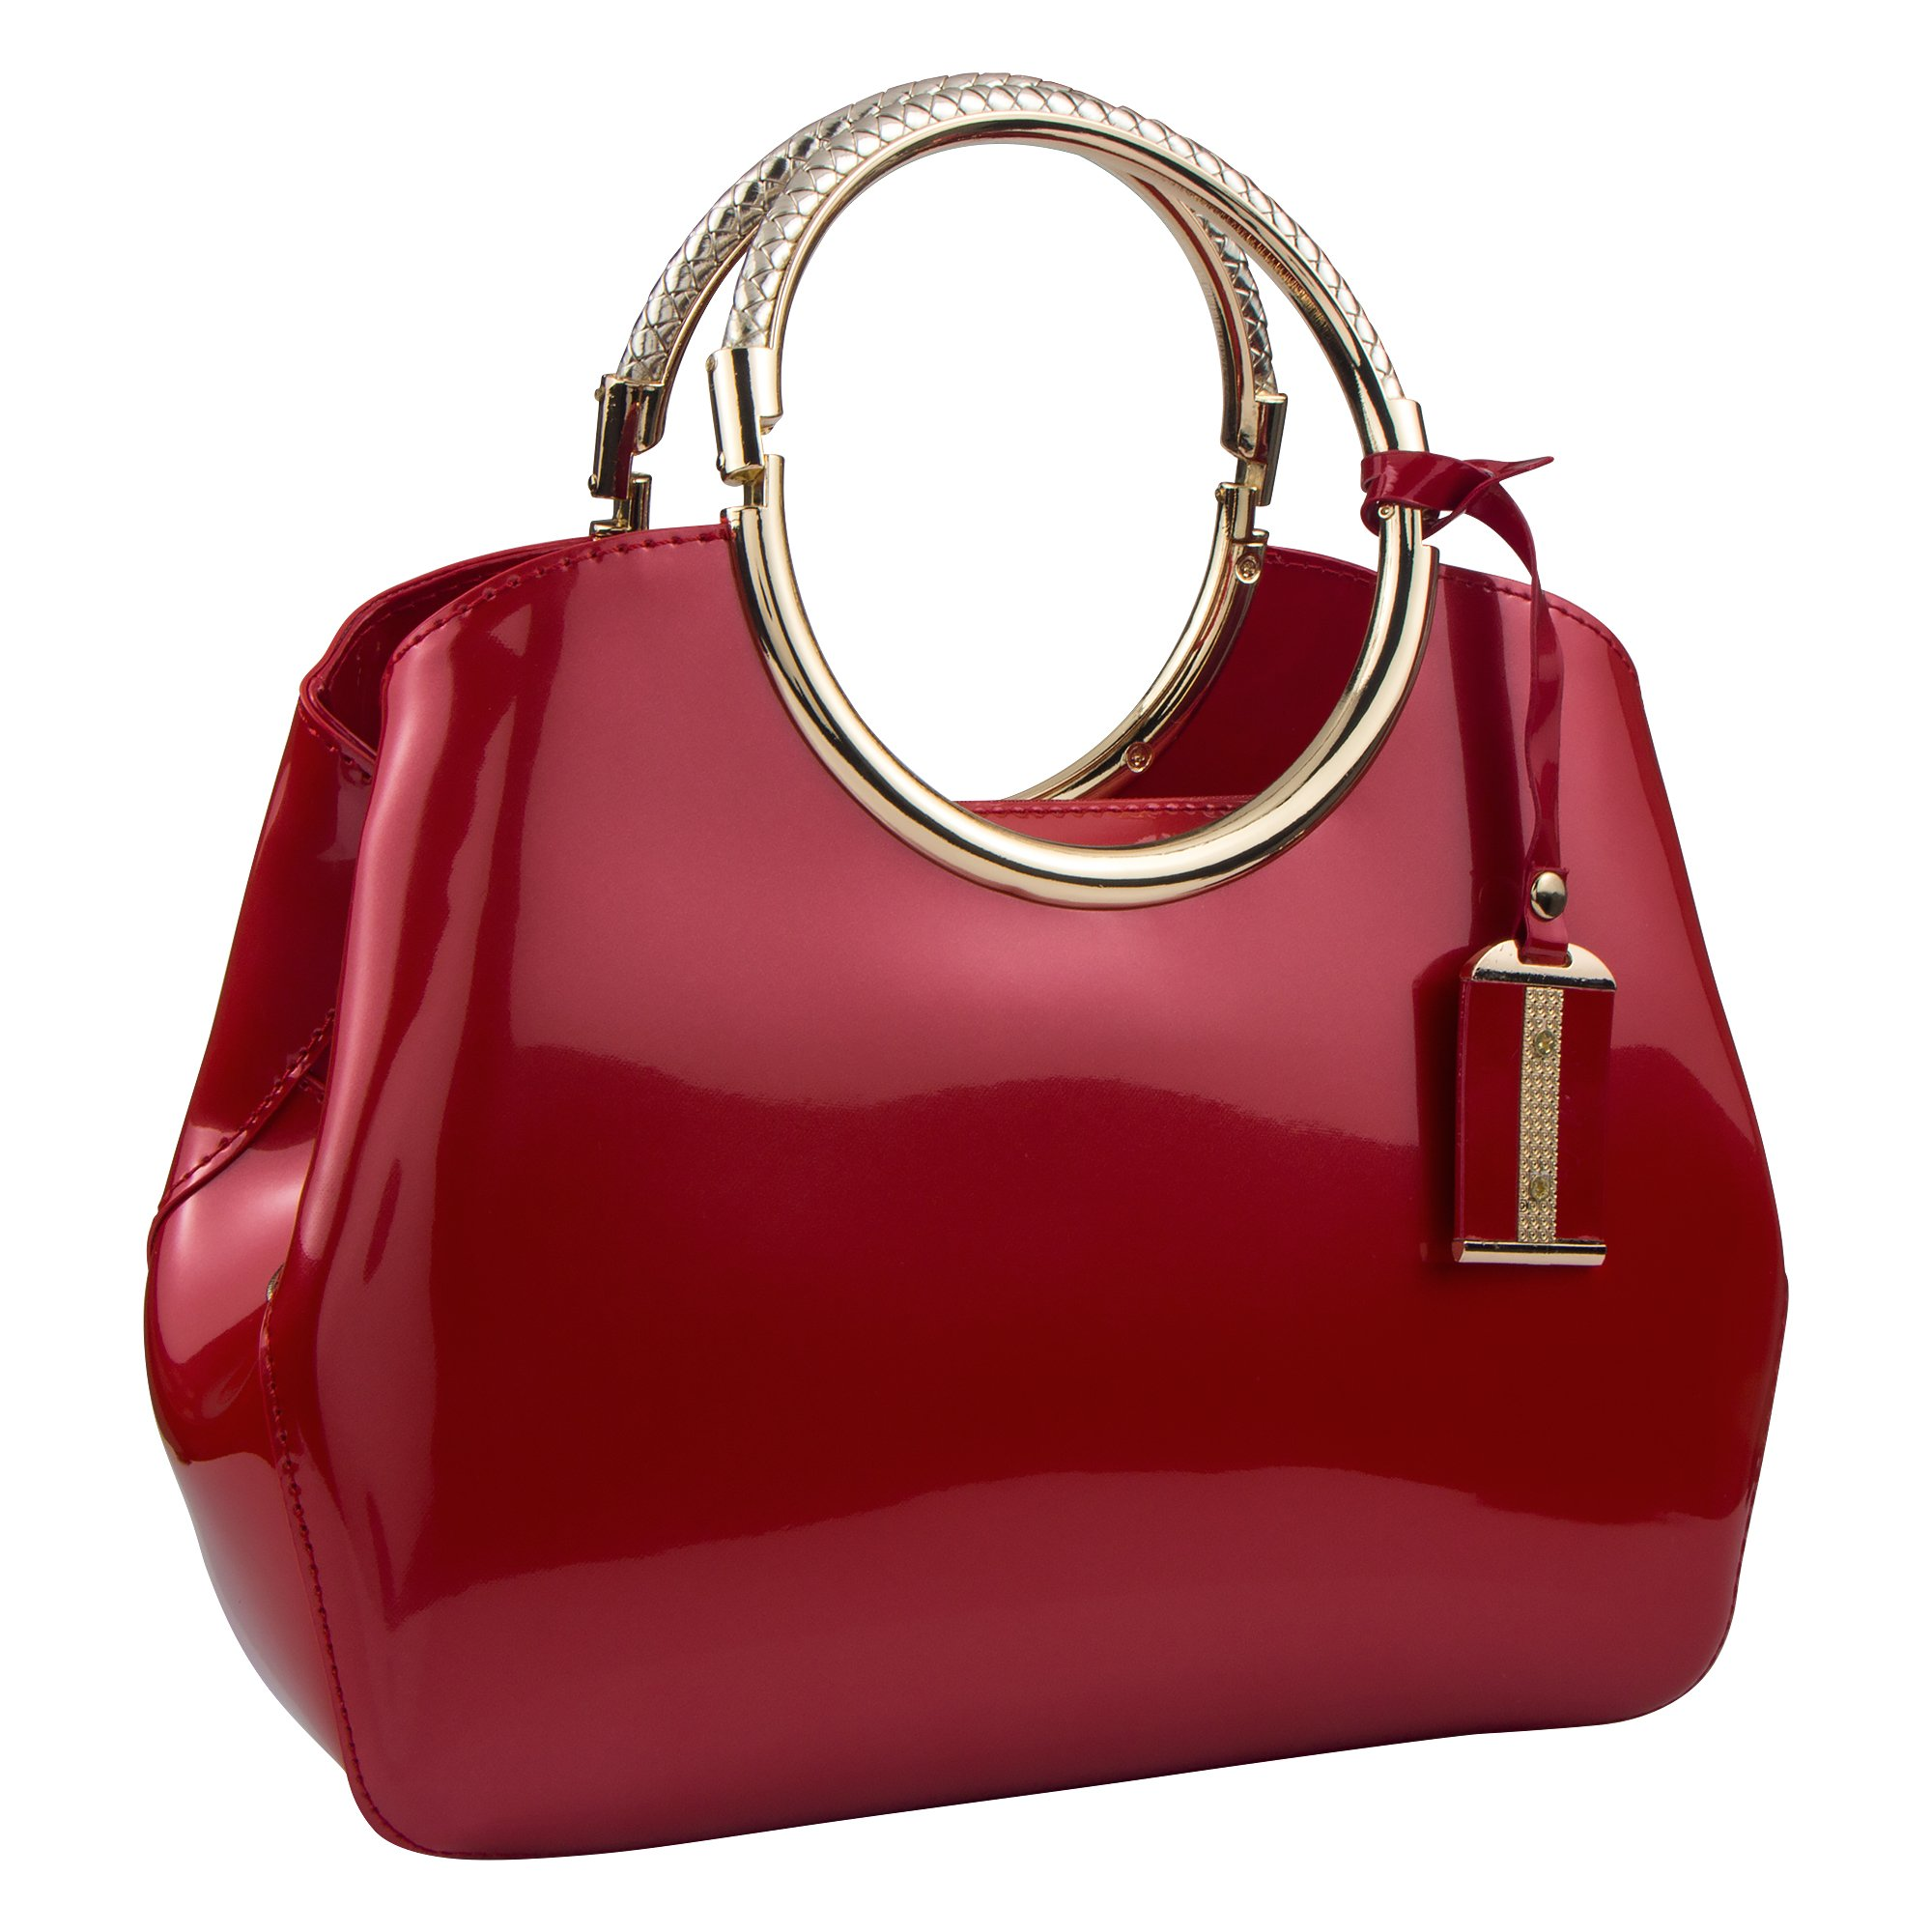 Bagood Women's Evening Bags Patent Leather Glossy Handbag Clutches Purses Shoulder Bag for Wedding Prom Party Red